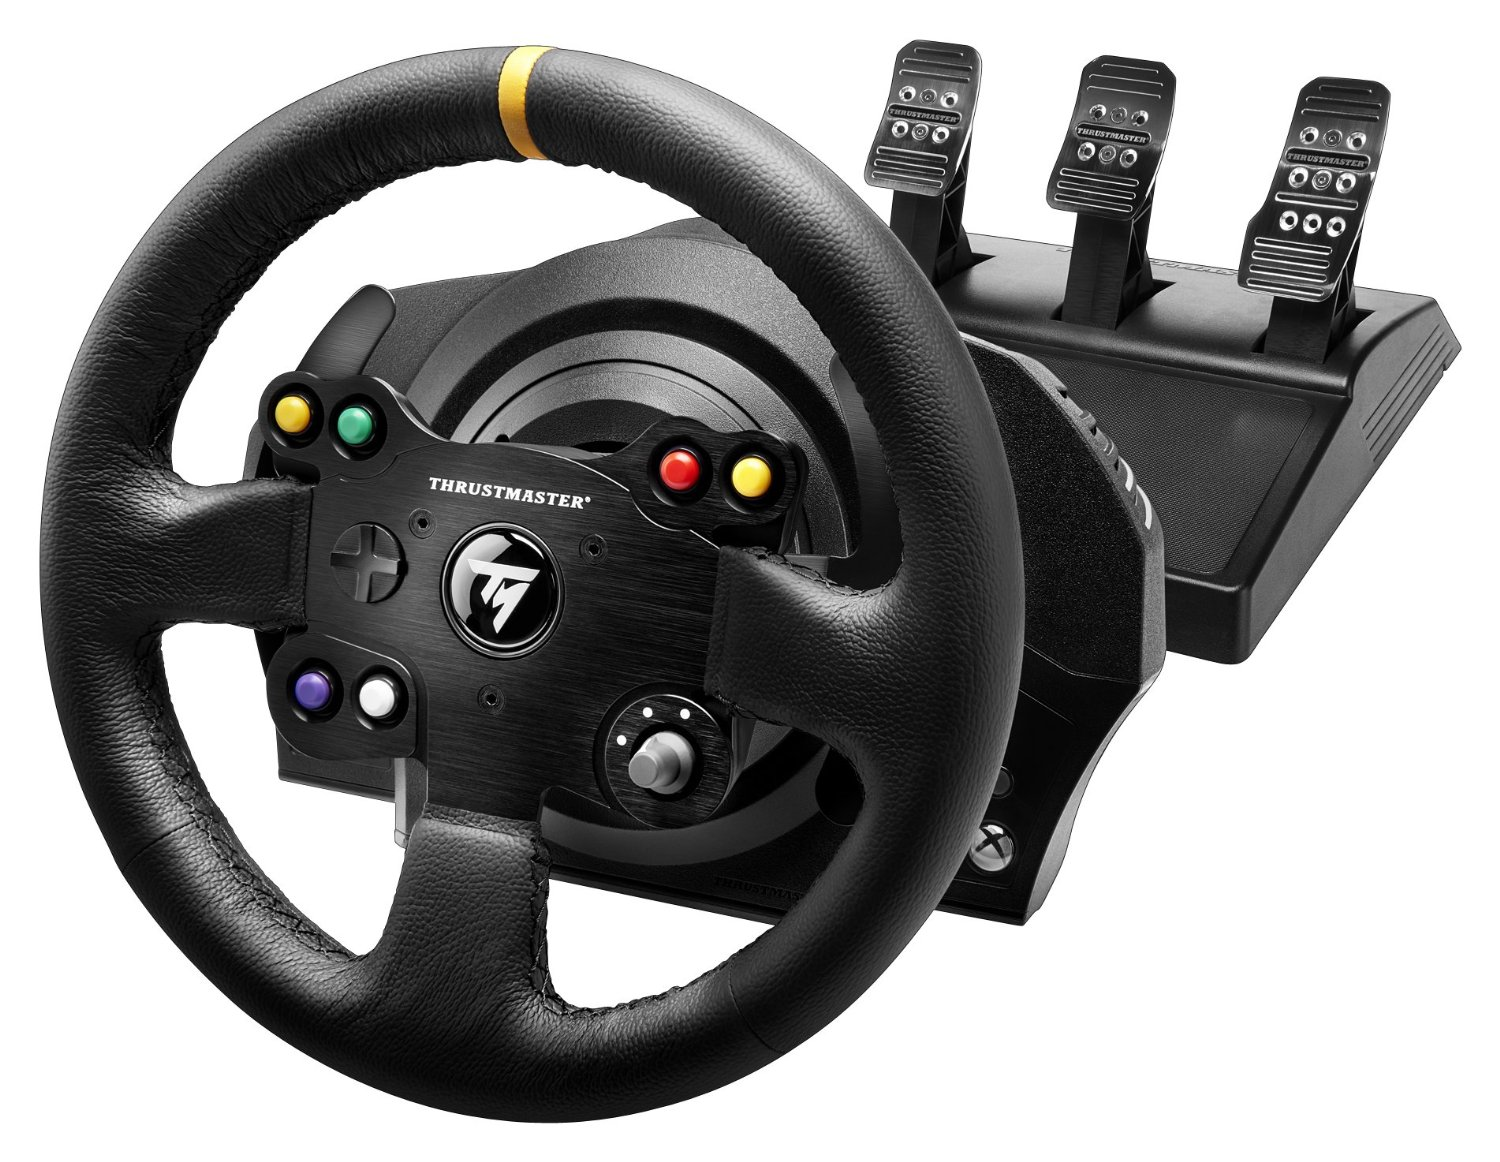 Thrustmaster TX Racing Wheel Leather Edition Announced